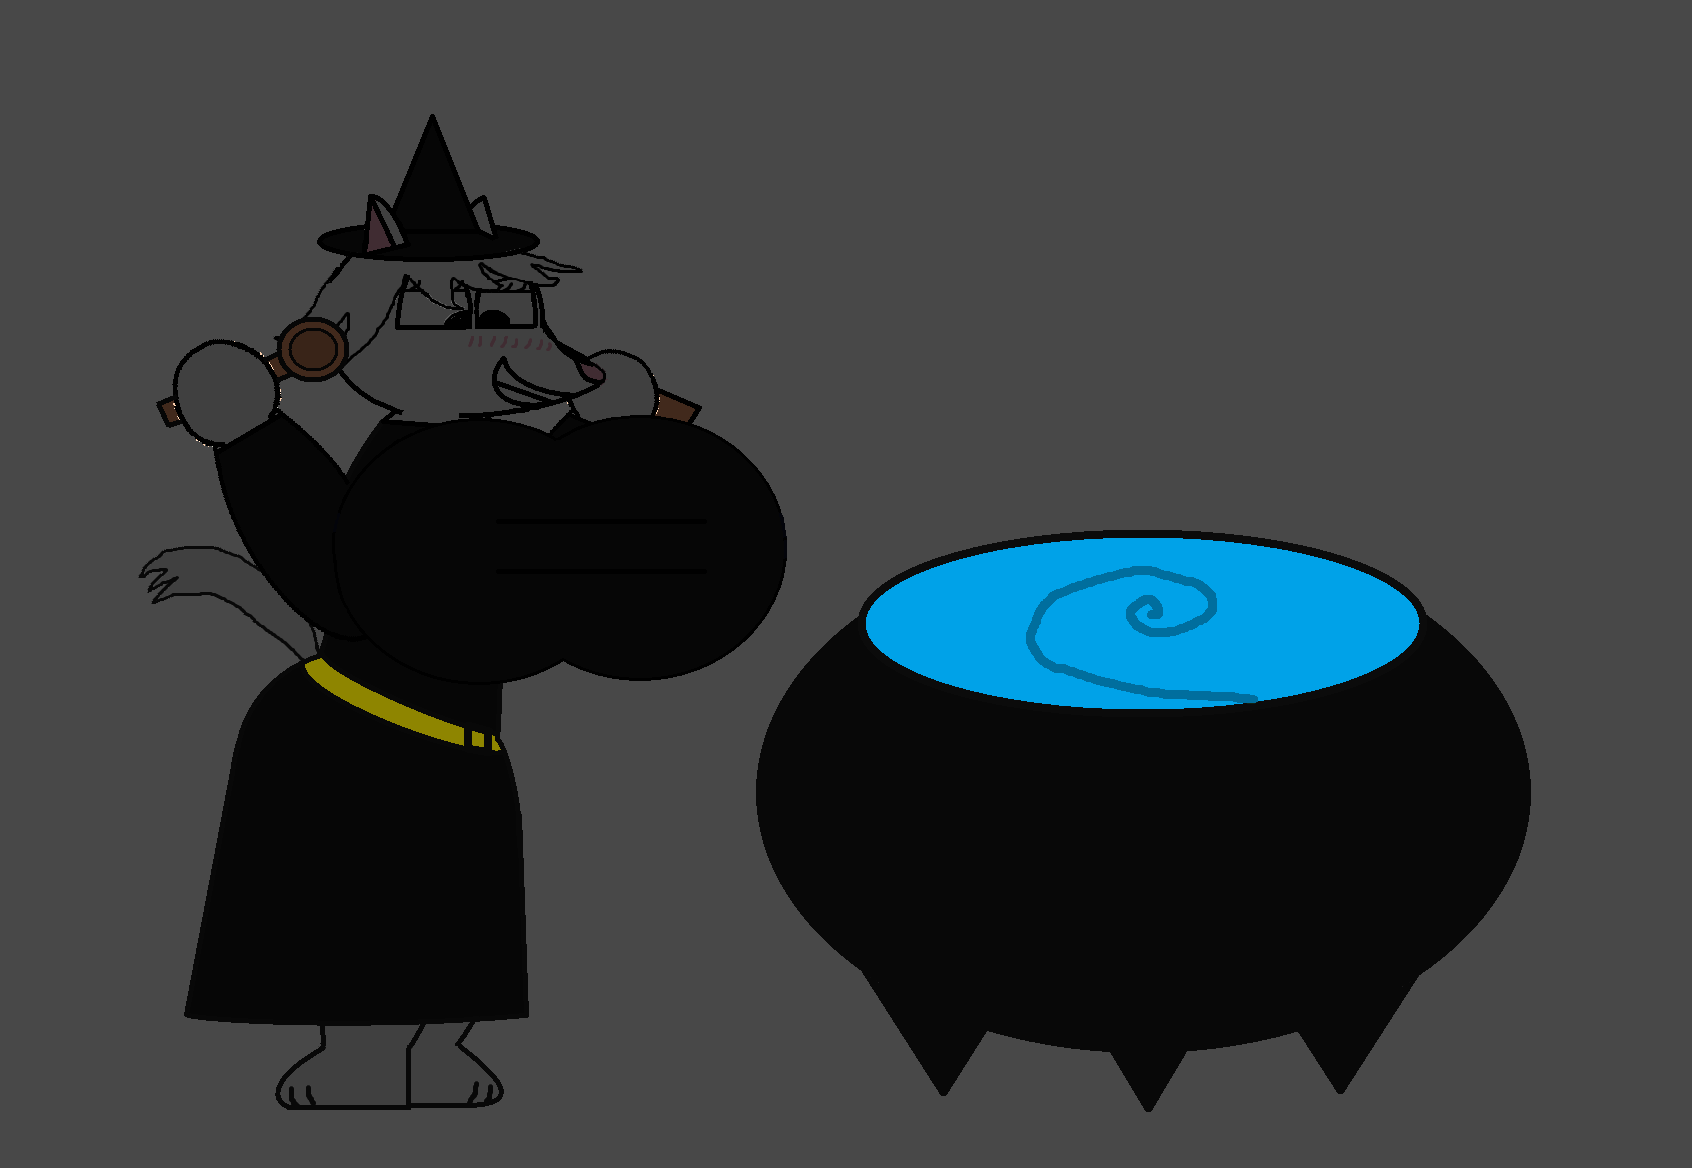 Witch Snowwhite Made Her breasts bigger by Pancakedude